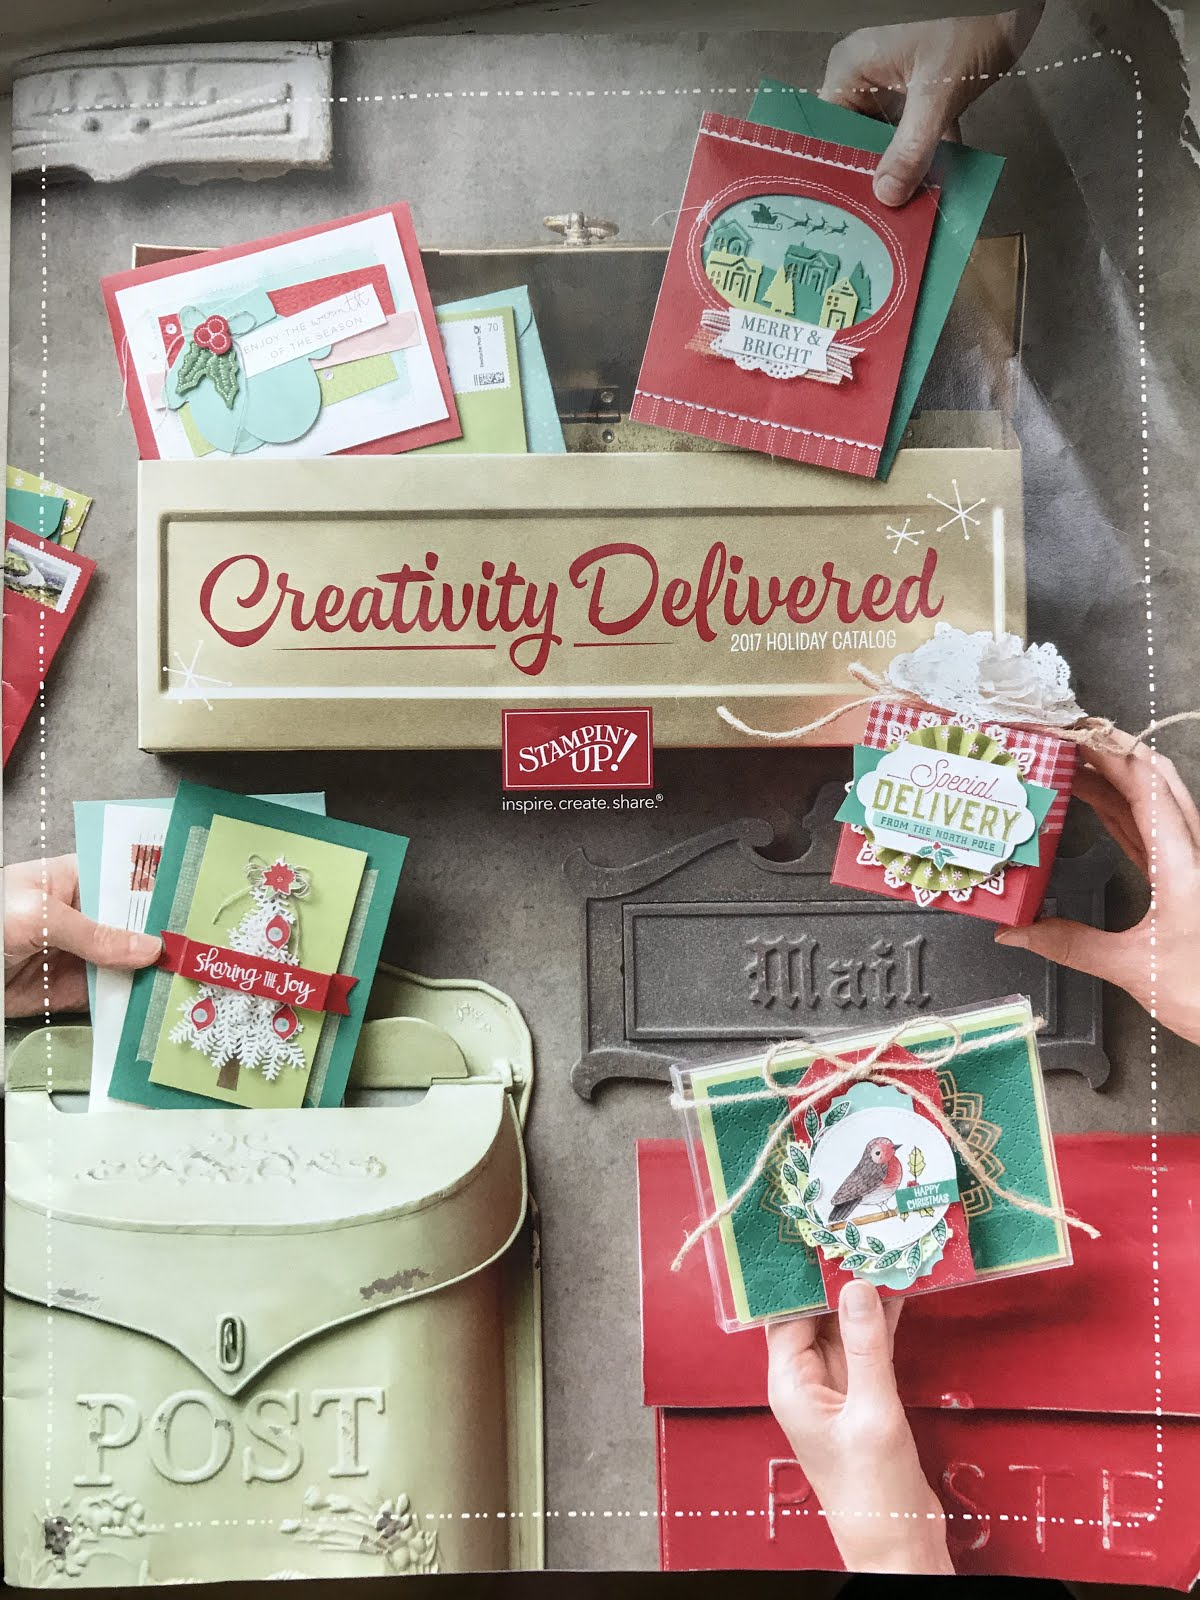 Stampin' Up! Holiday 2017 catalog